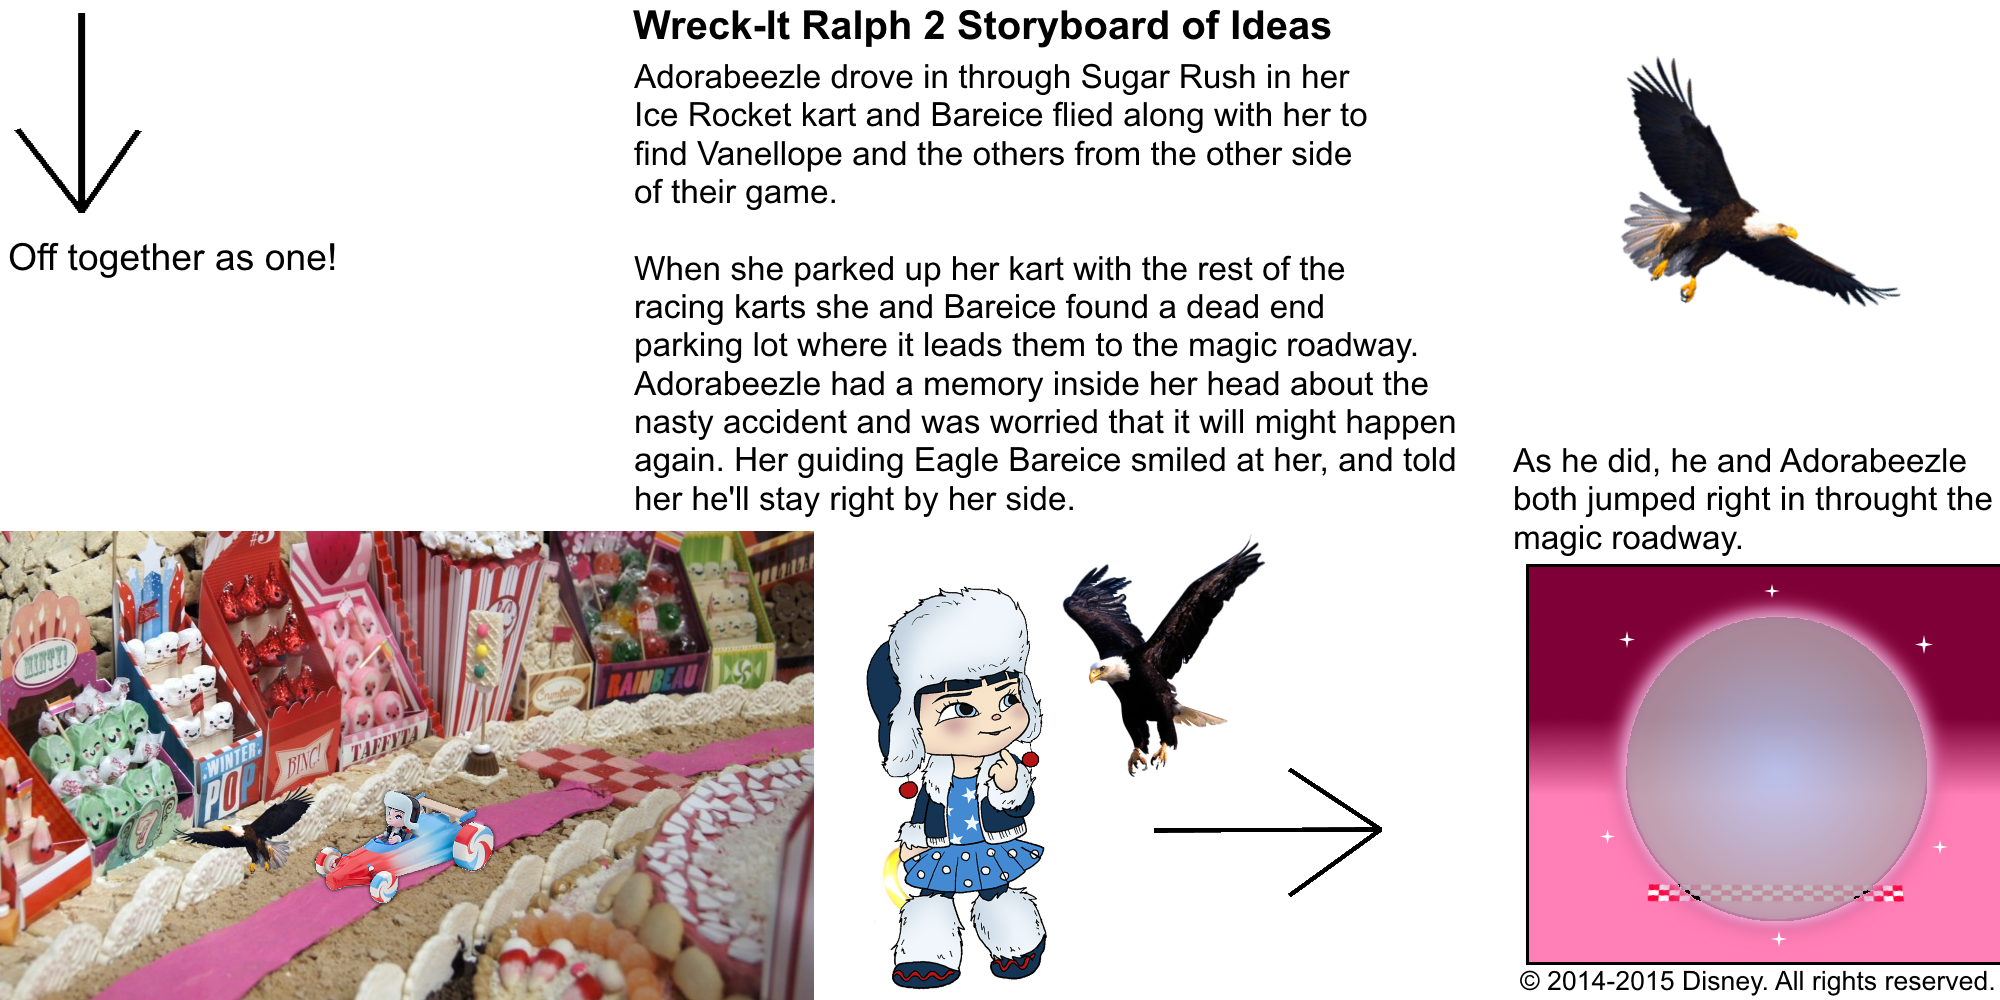 Best Lines From Wreck It Ralph 2: Wreck-It Ralph 2 Storyboard Of Ideas 33.png